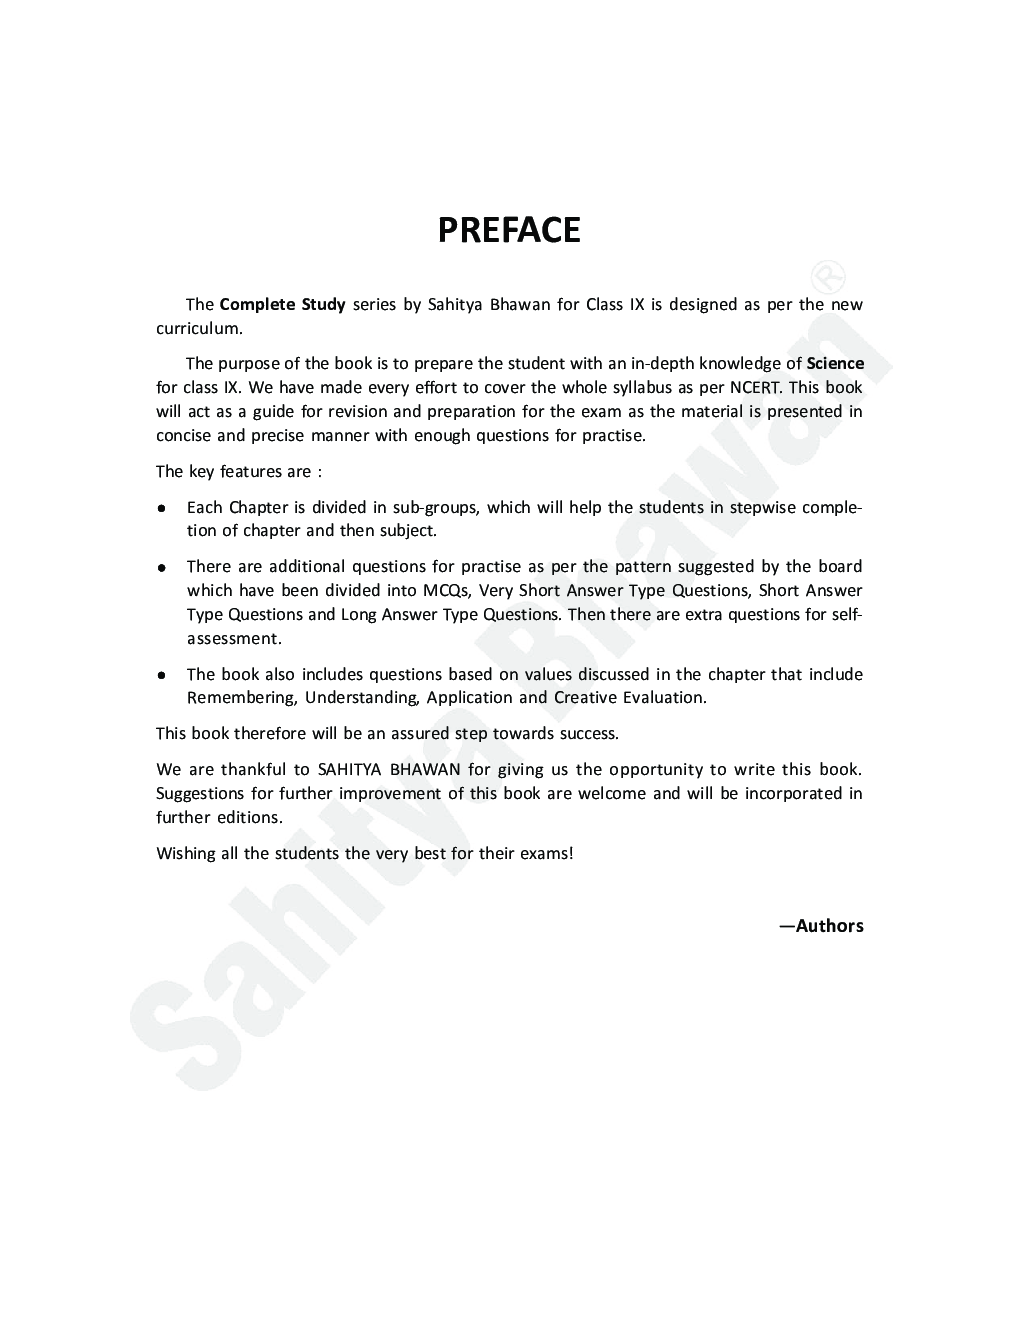 CBSE Complete Study Science For Class - IX - Page 5